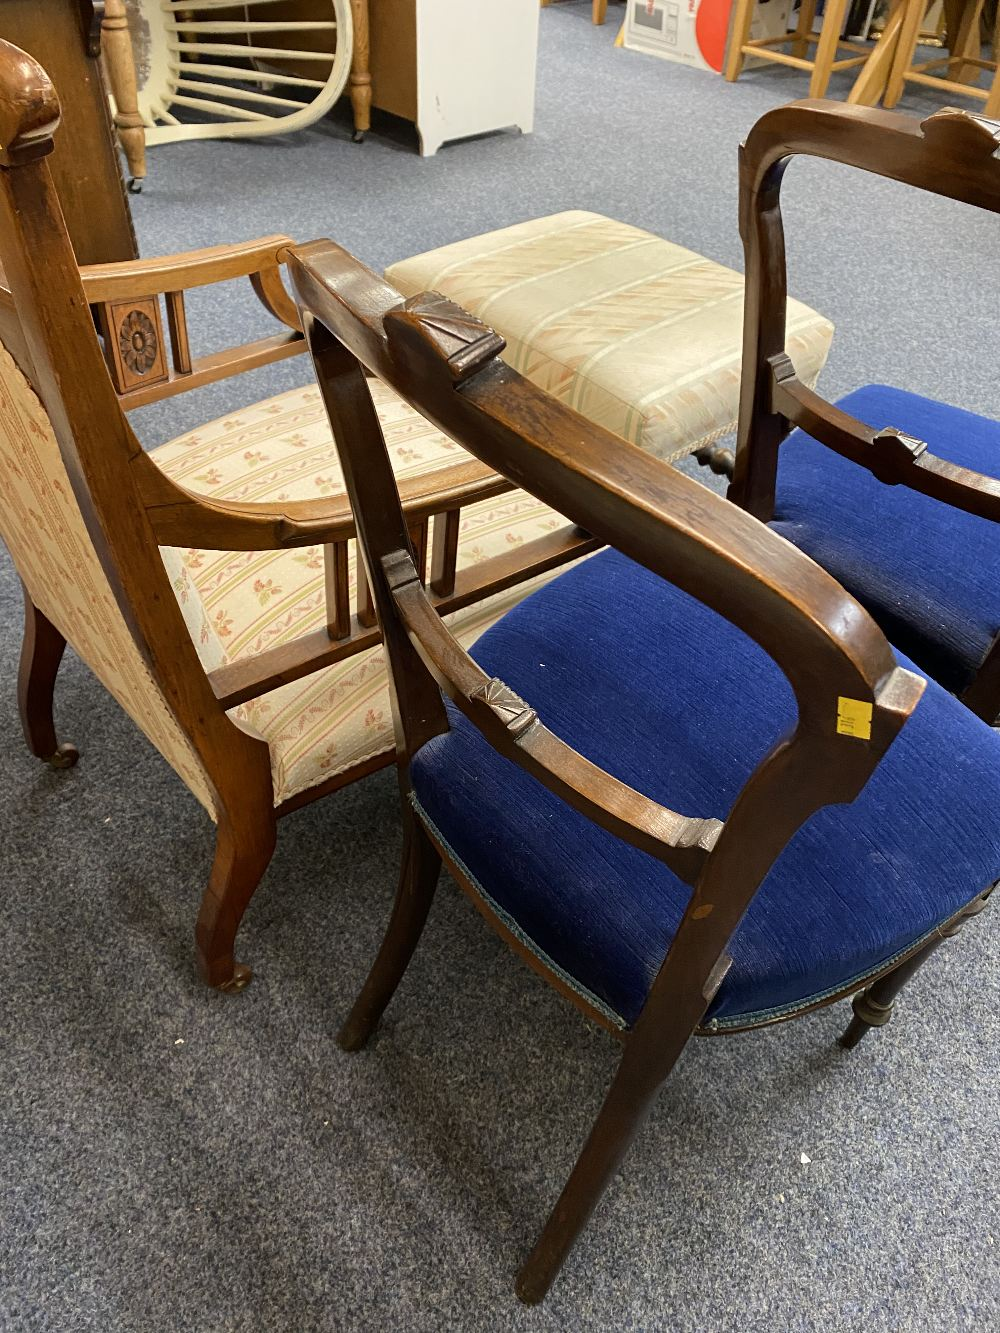 EDWARDIAN SALON CHAIRS (3) and a vintage oak footstool to include a mahogany armchair with carved - Image 2 of 3